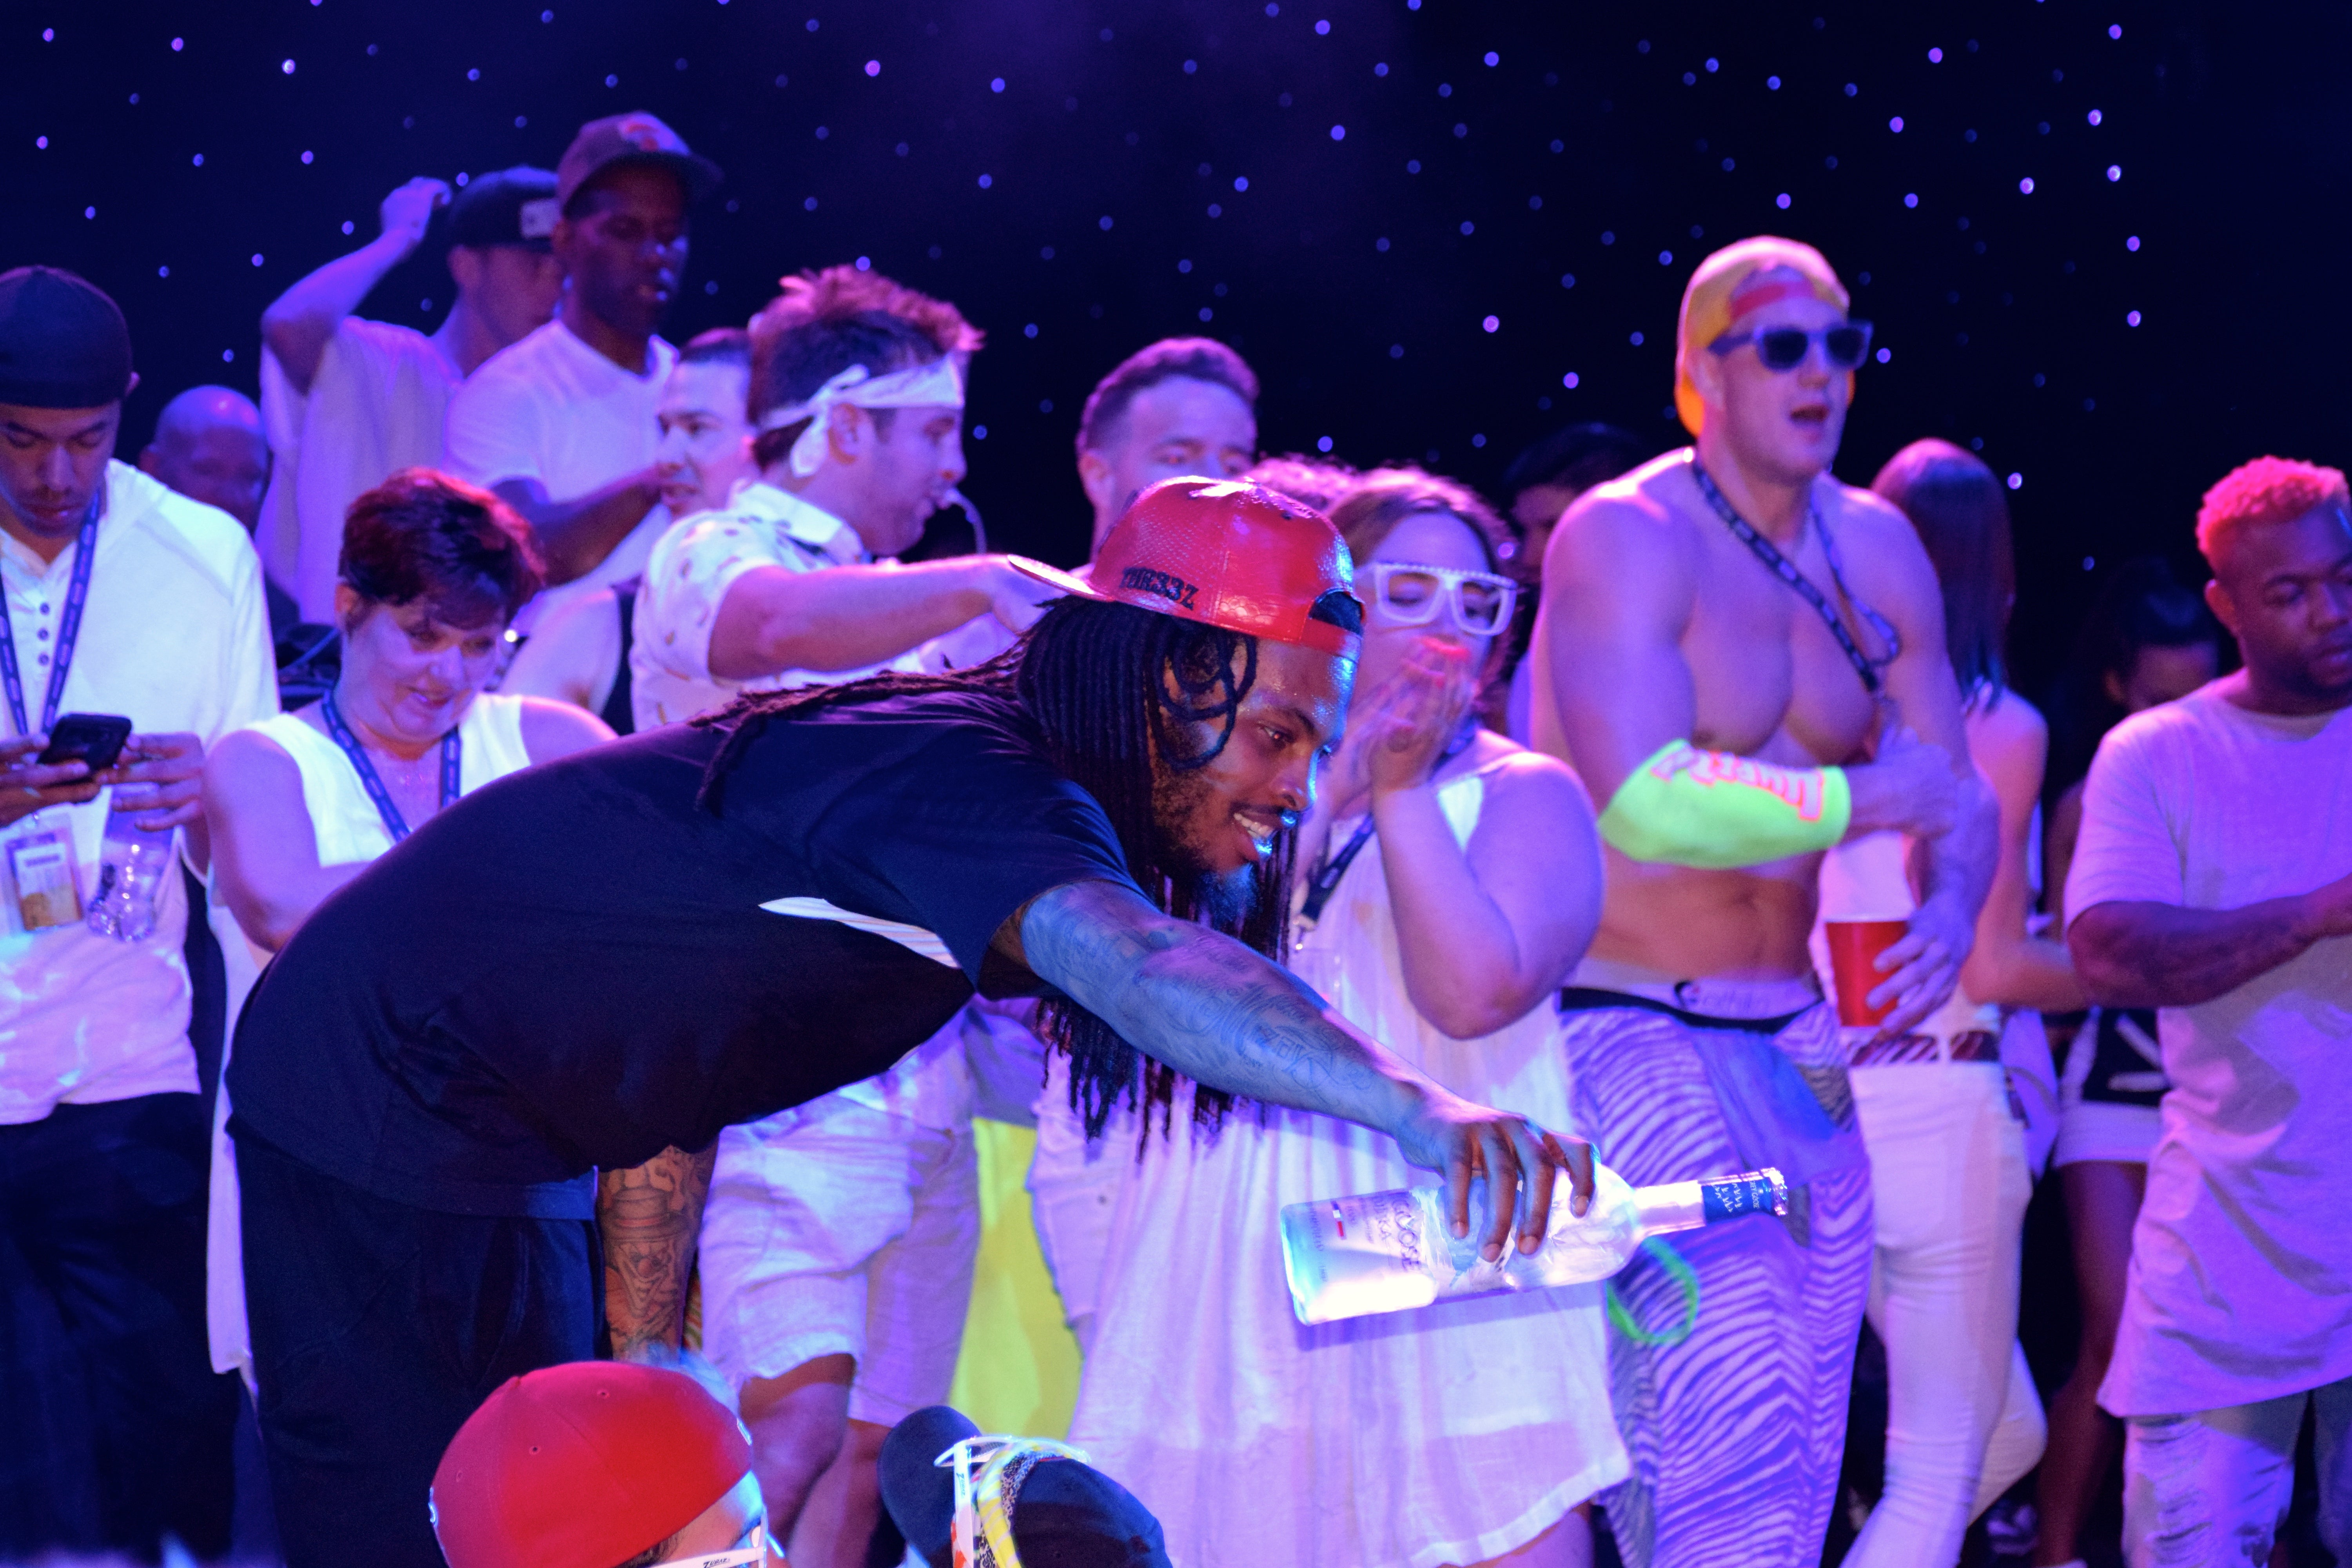 """BAHAMAS - FEBRUARY 21: Waka Flocka Flame show on board New England Patriots tight end Rob Gronkowski's """"Gronk's Party Ship"""" on the Norwegian Pearl in the Bahamas on Feb. 21, 2016. (Christopher Muther/Globe Staff)"""